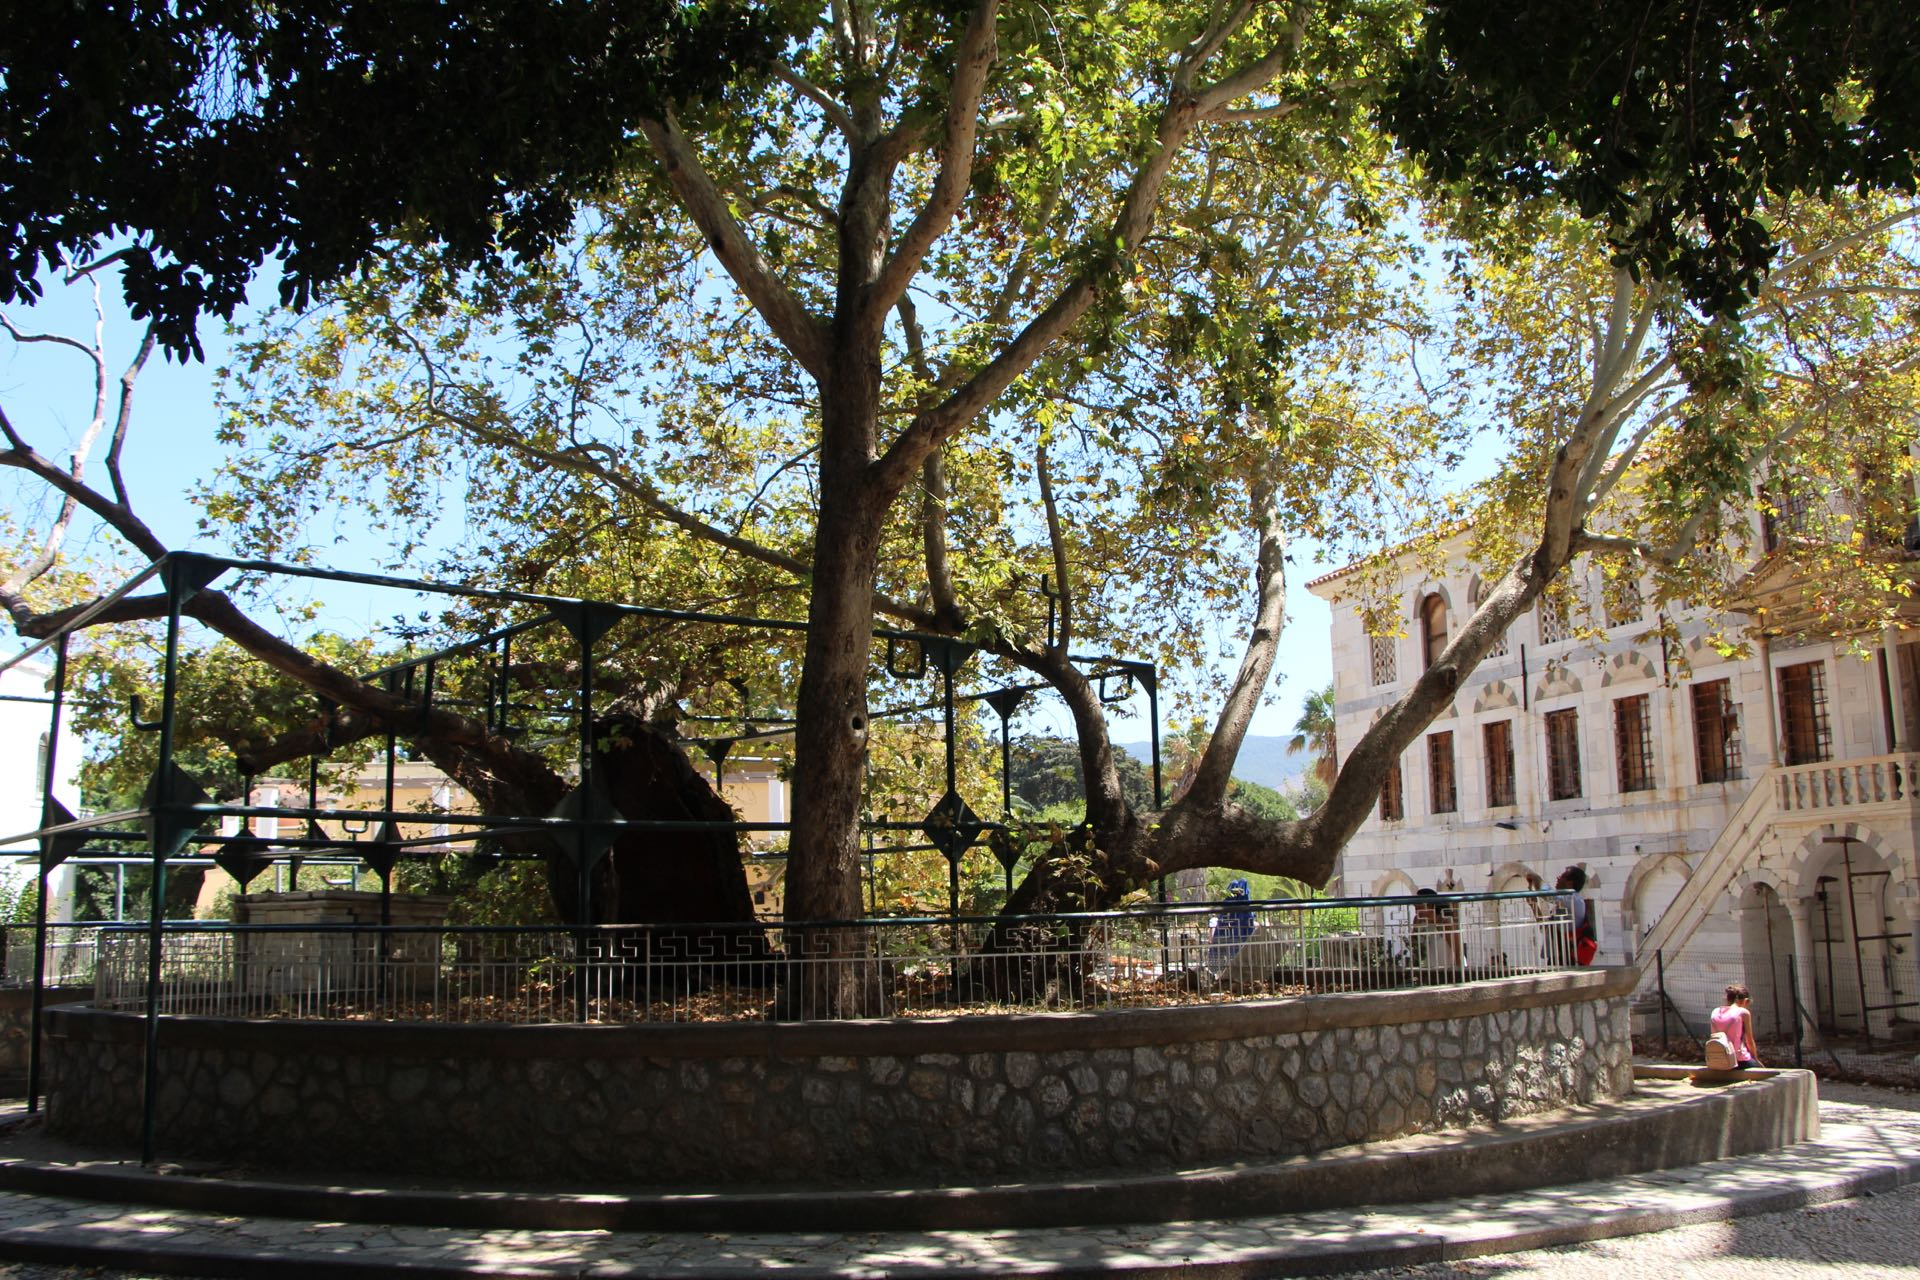 The plane tree of Hippocrates in Lotzia square